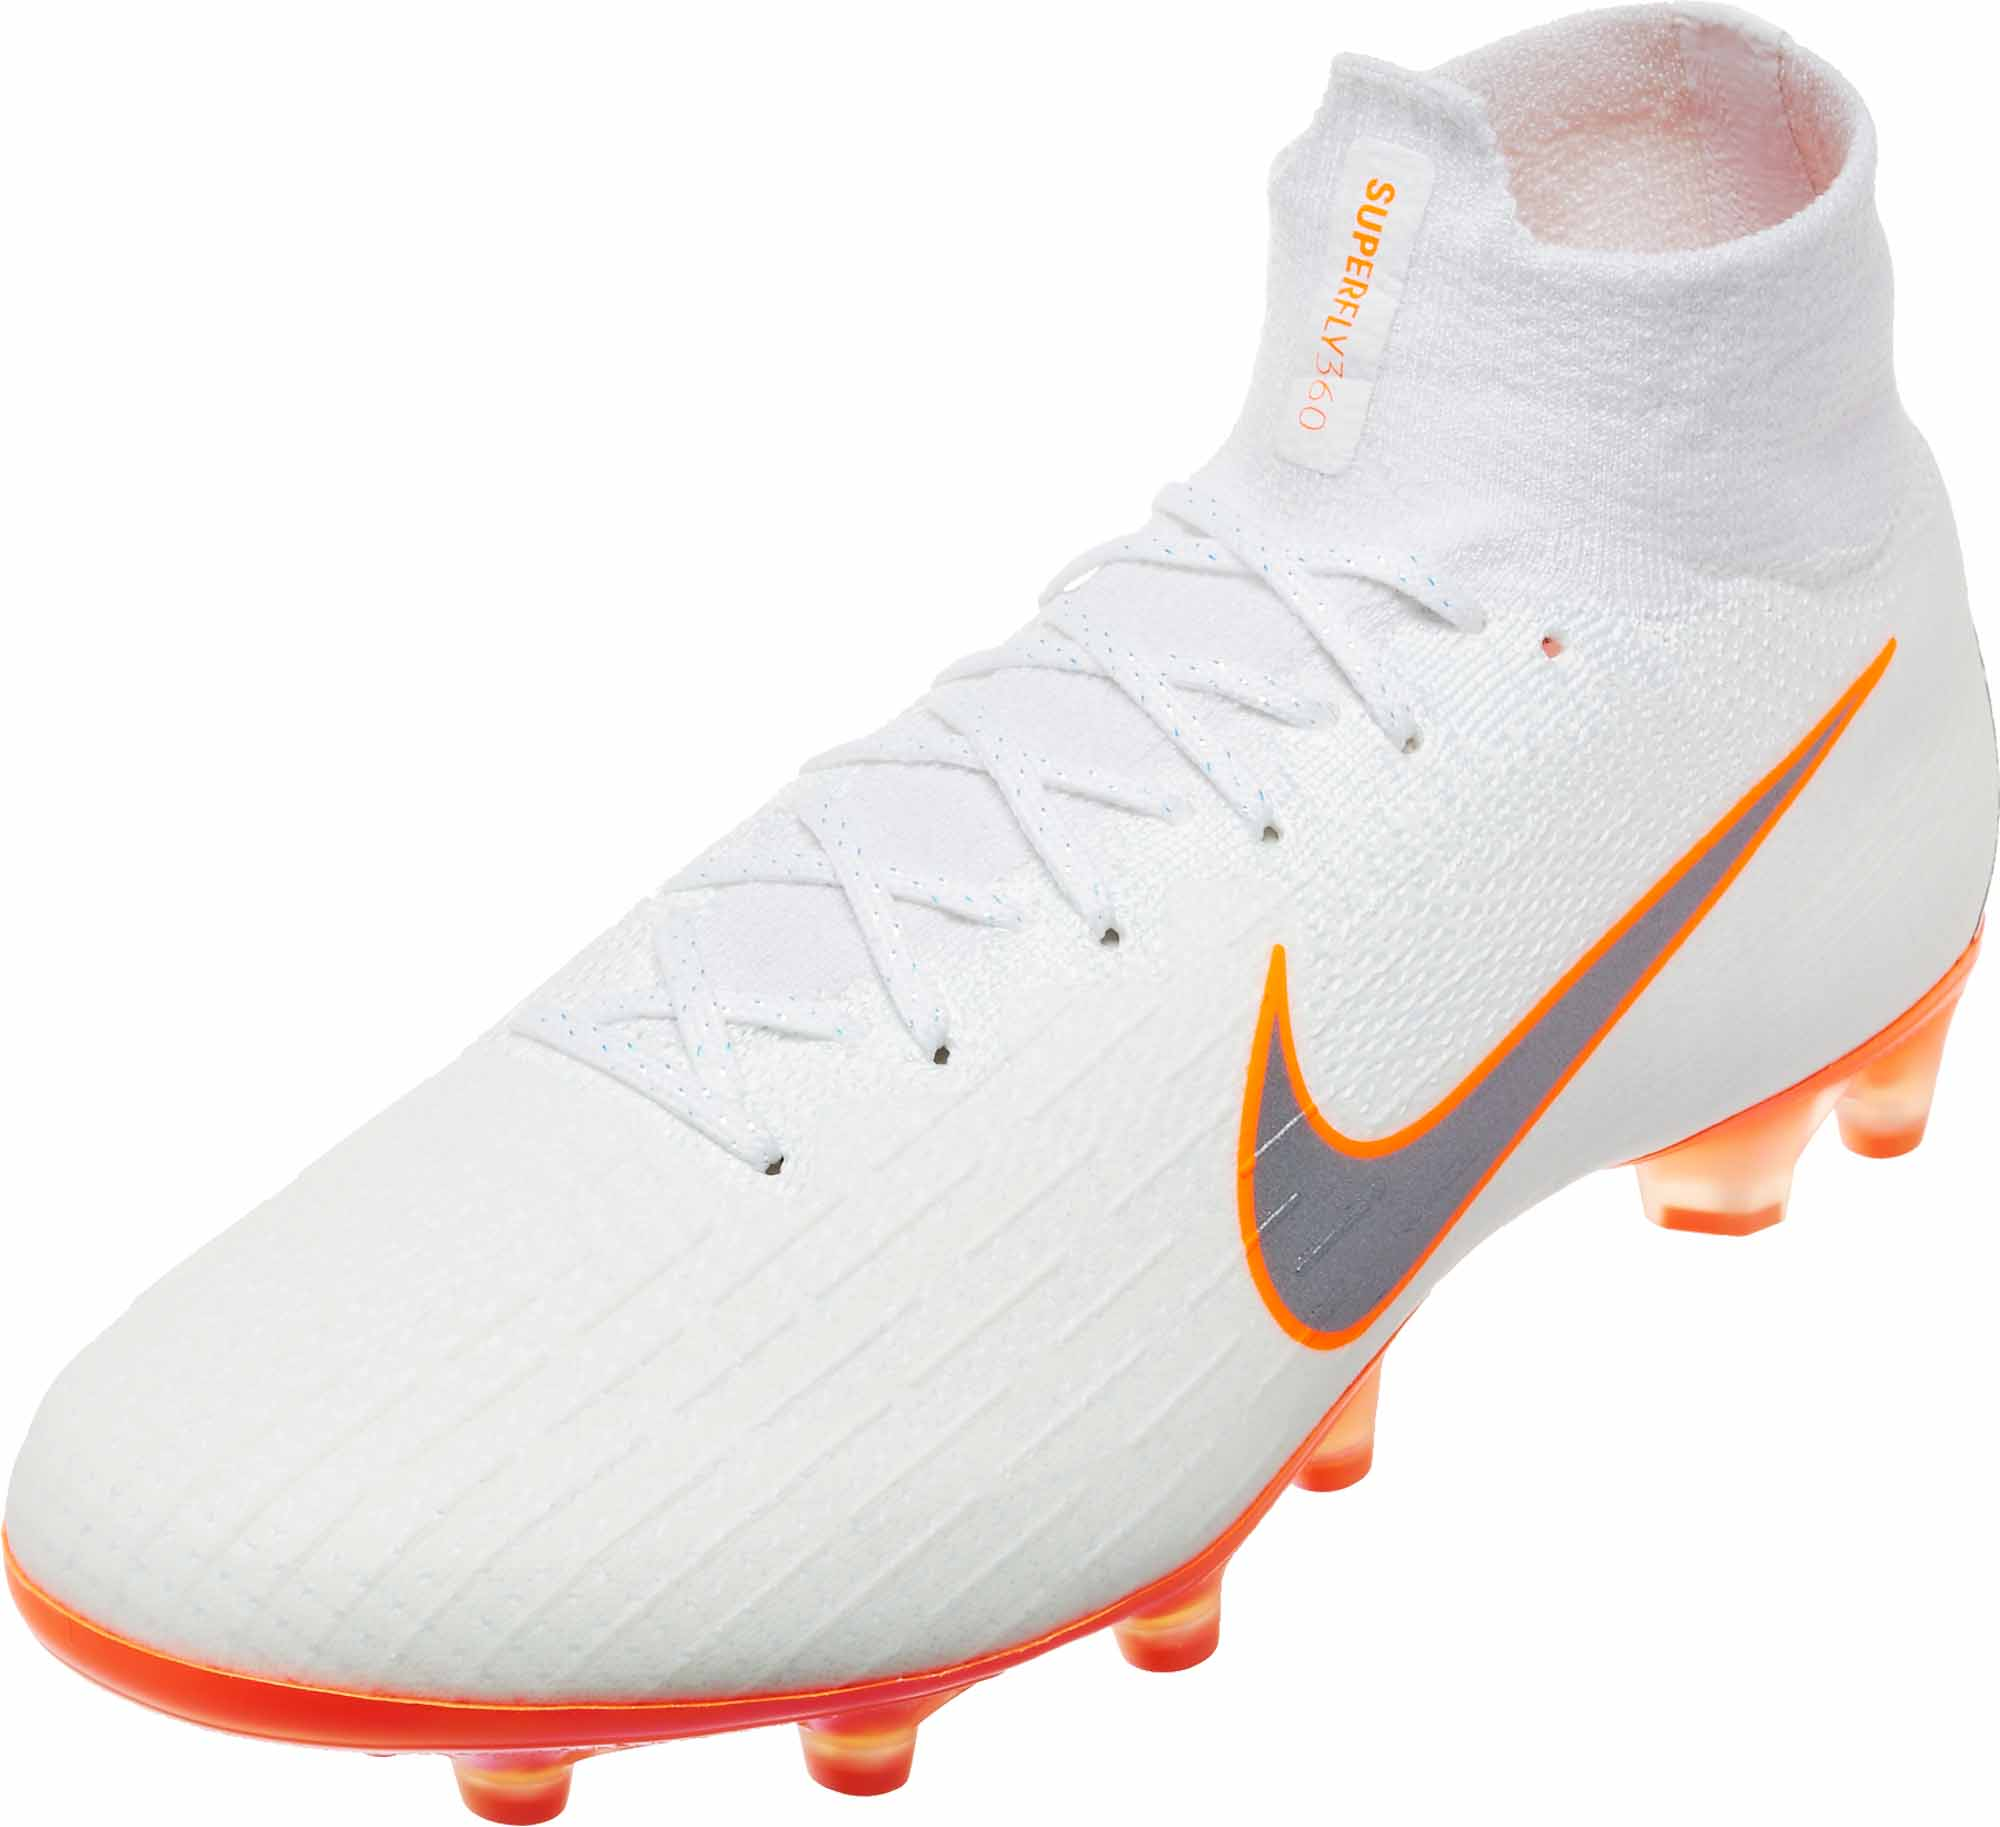 Nike Mercurial Superfly 6 Elite AG - Pro - White Total Orange ... f392298998